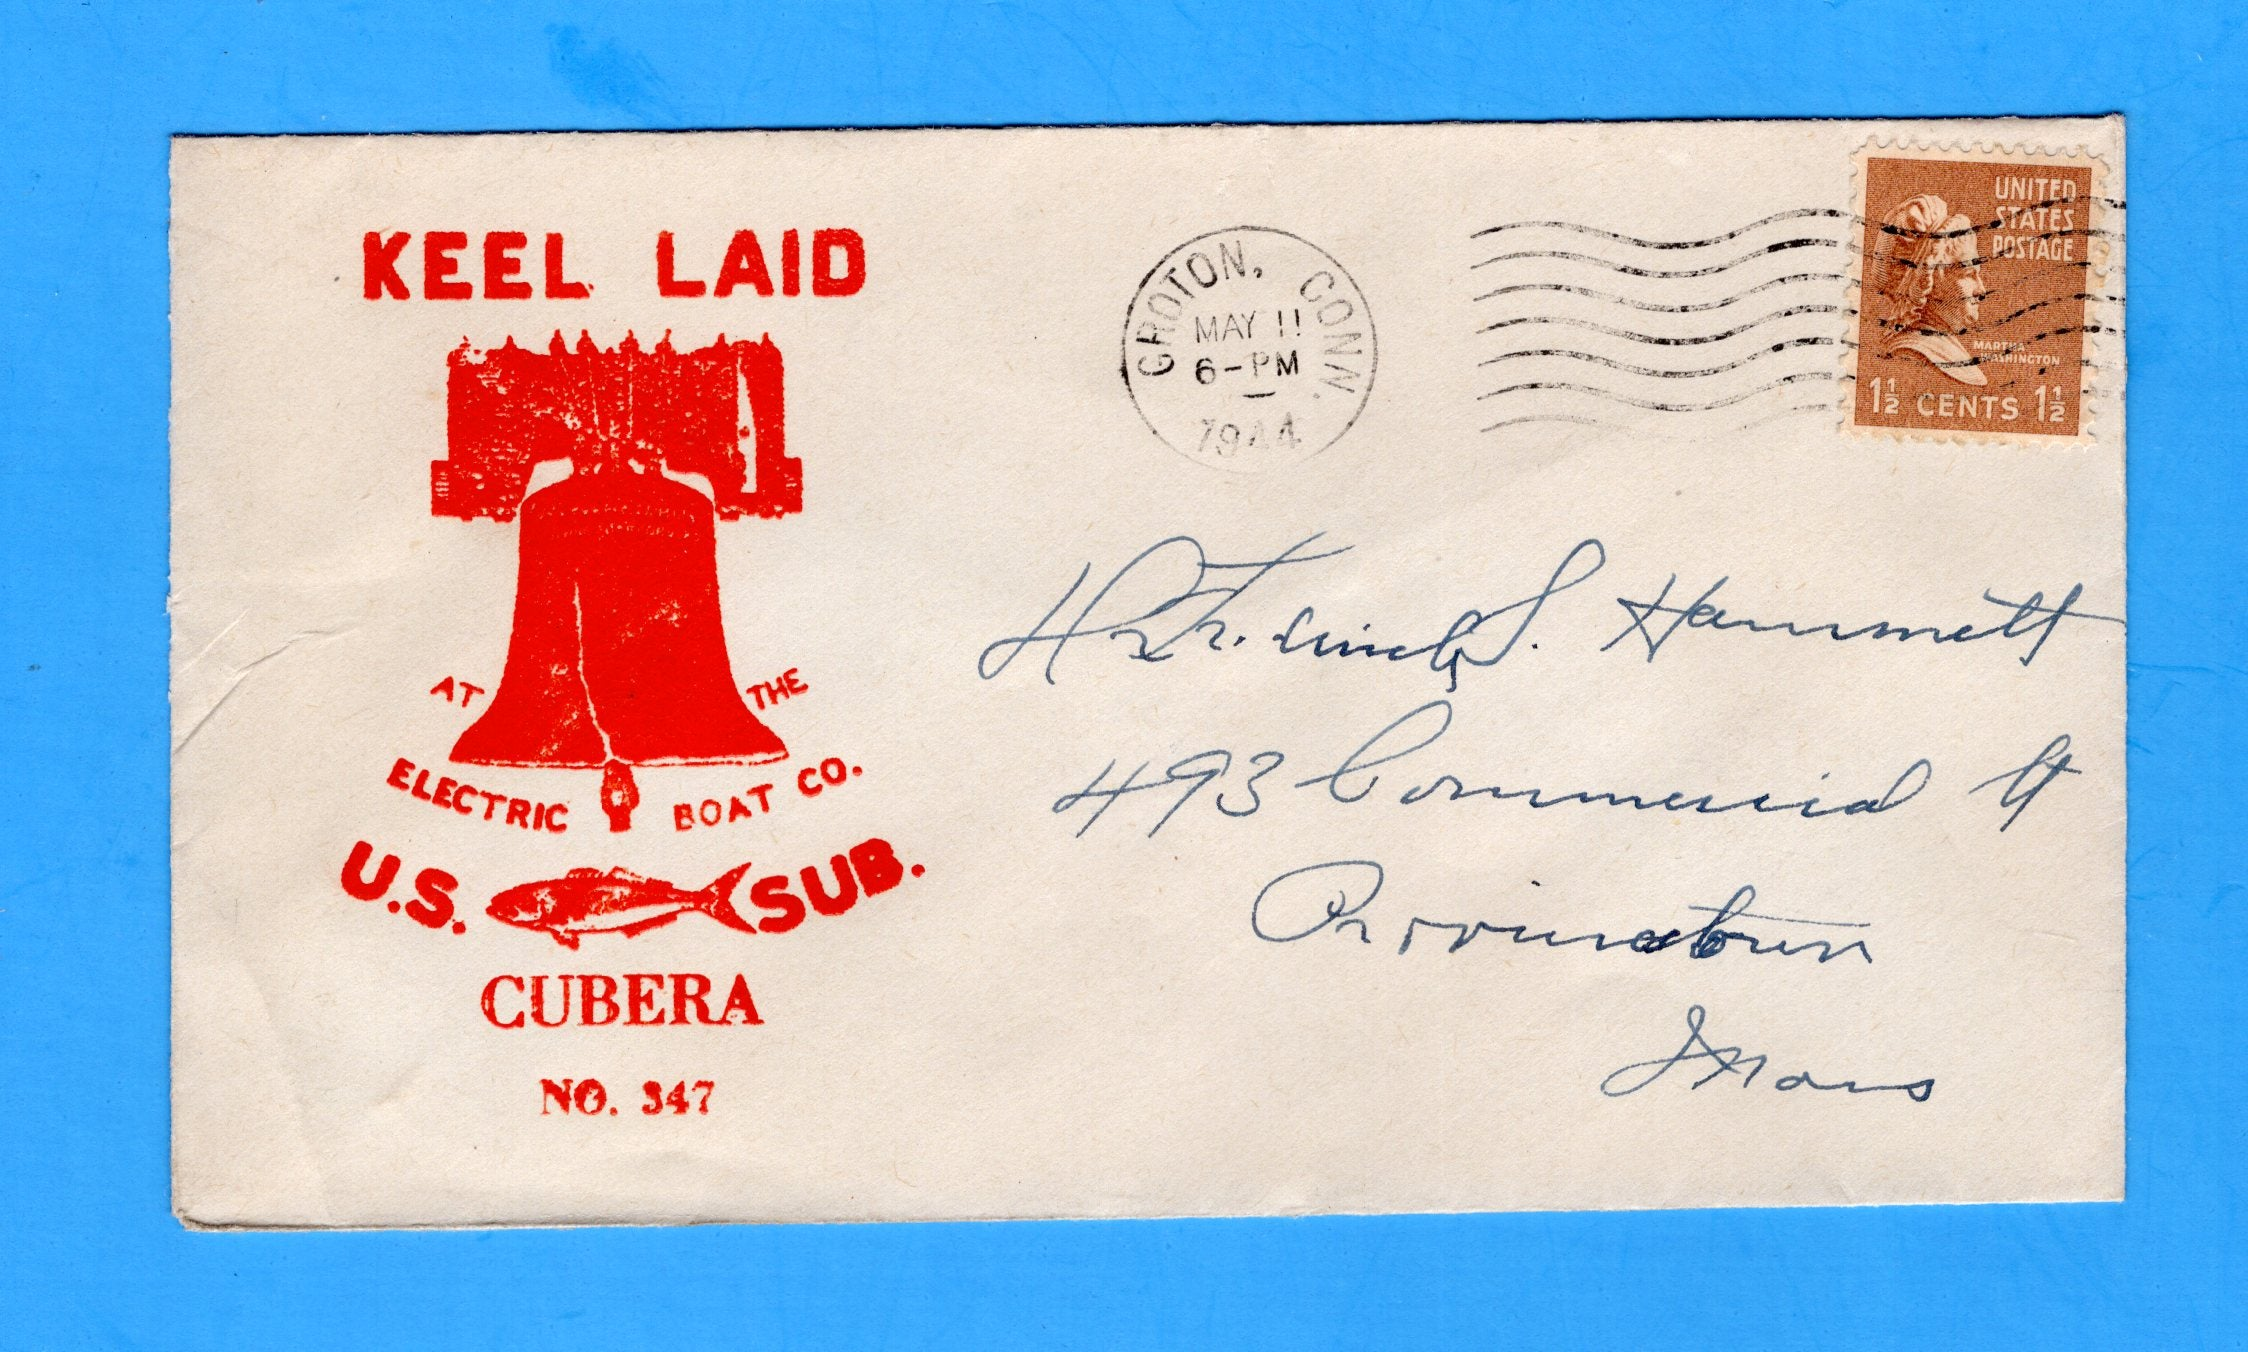 USS Cubera SS-347 Keel Laid May 11, 1944 - Raised Print Cachet